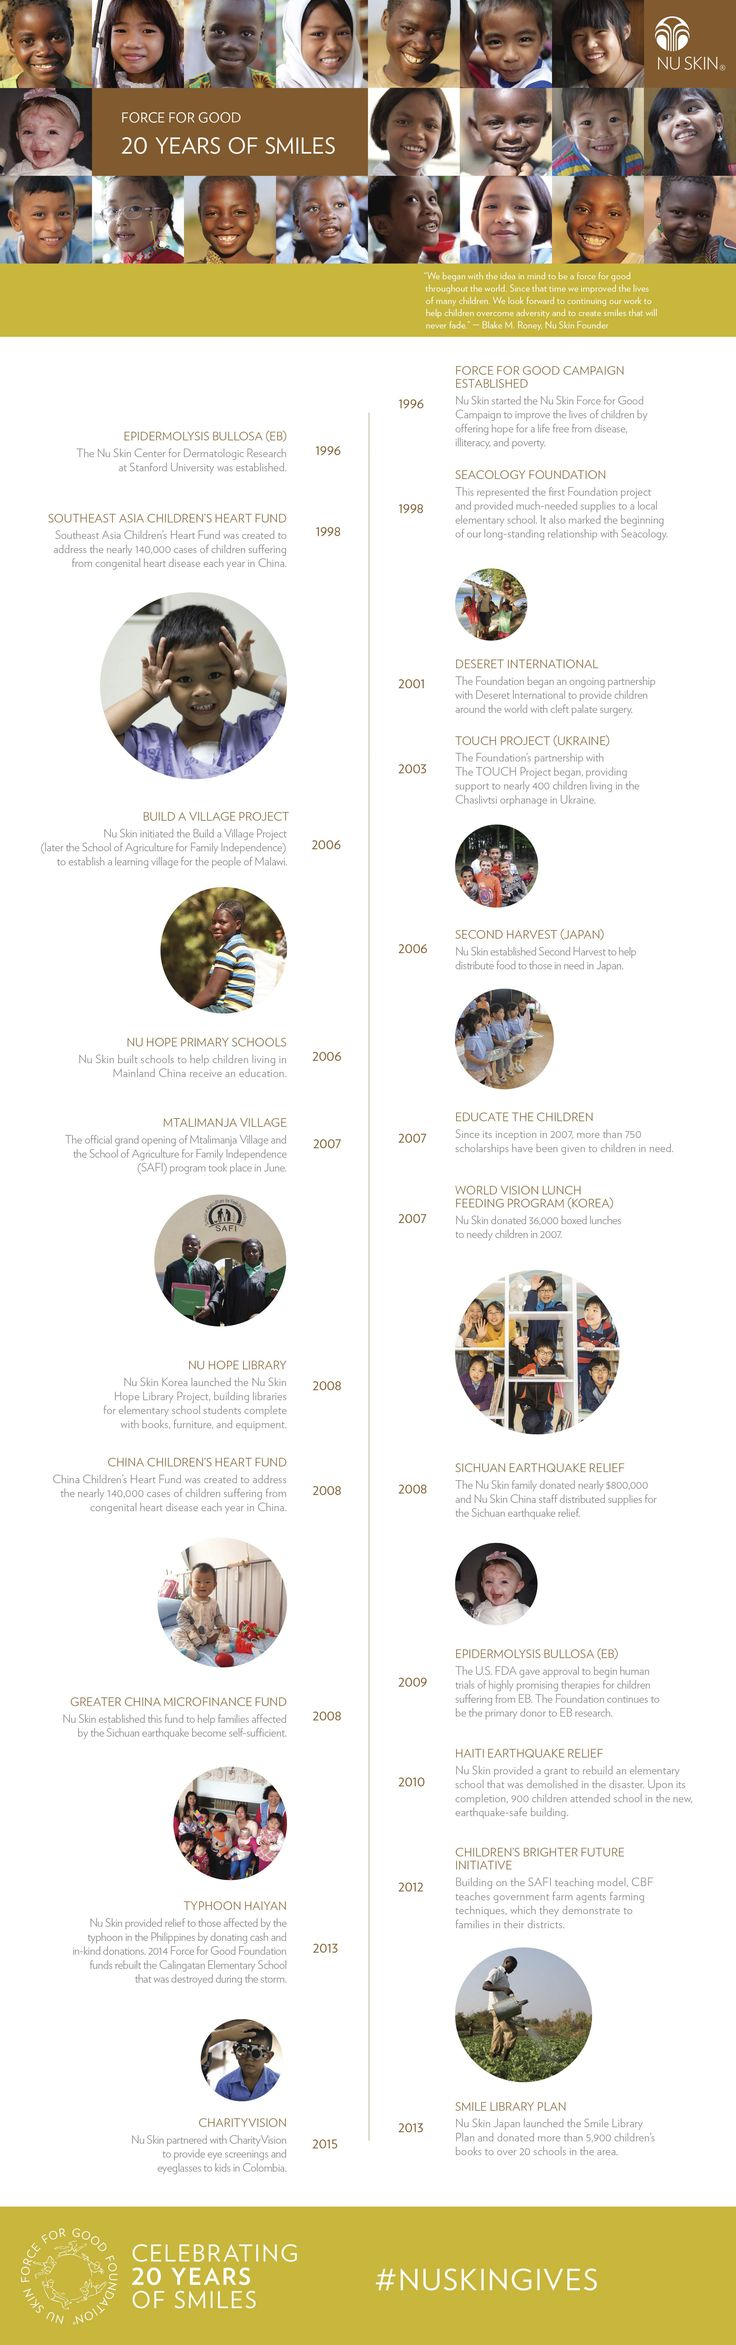 This year Nu Skin celebrates 20 years of giving. Take a look at some of our Force for Good highlights from the past 20 years! #NuSkinGives